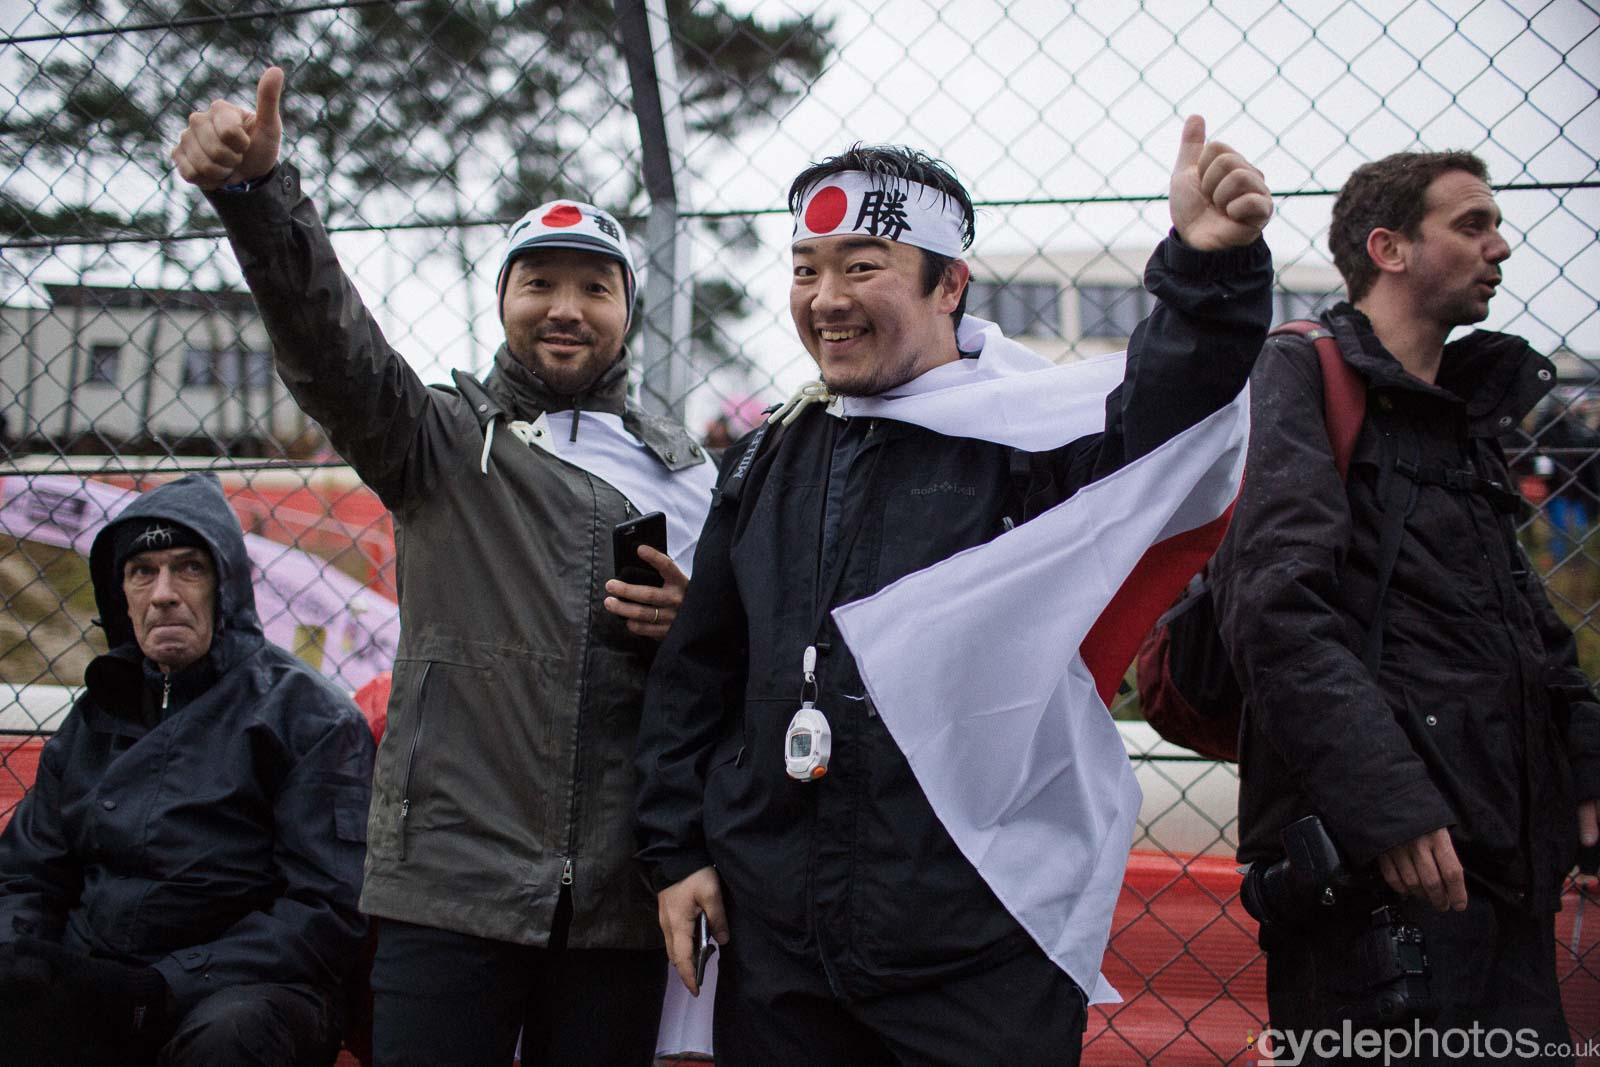 2016-cyclephotos-cyclocross-world-championships-zolder-104425-japanese-fans